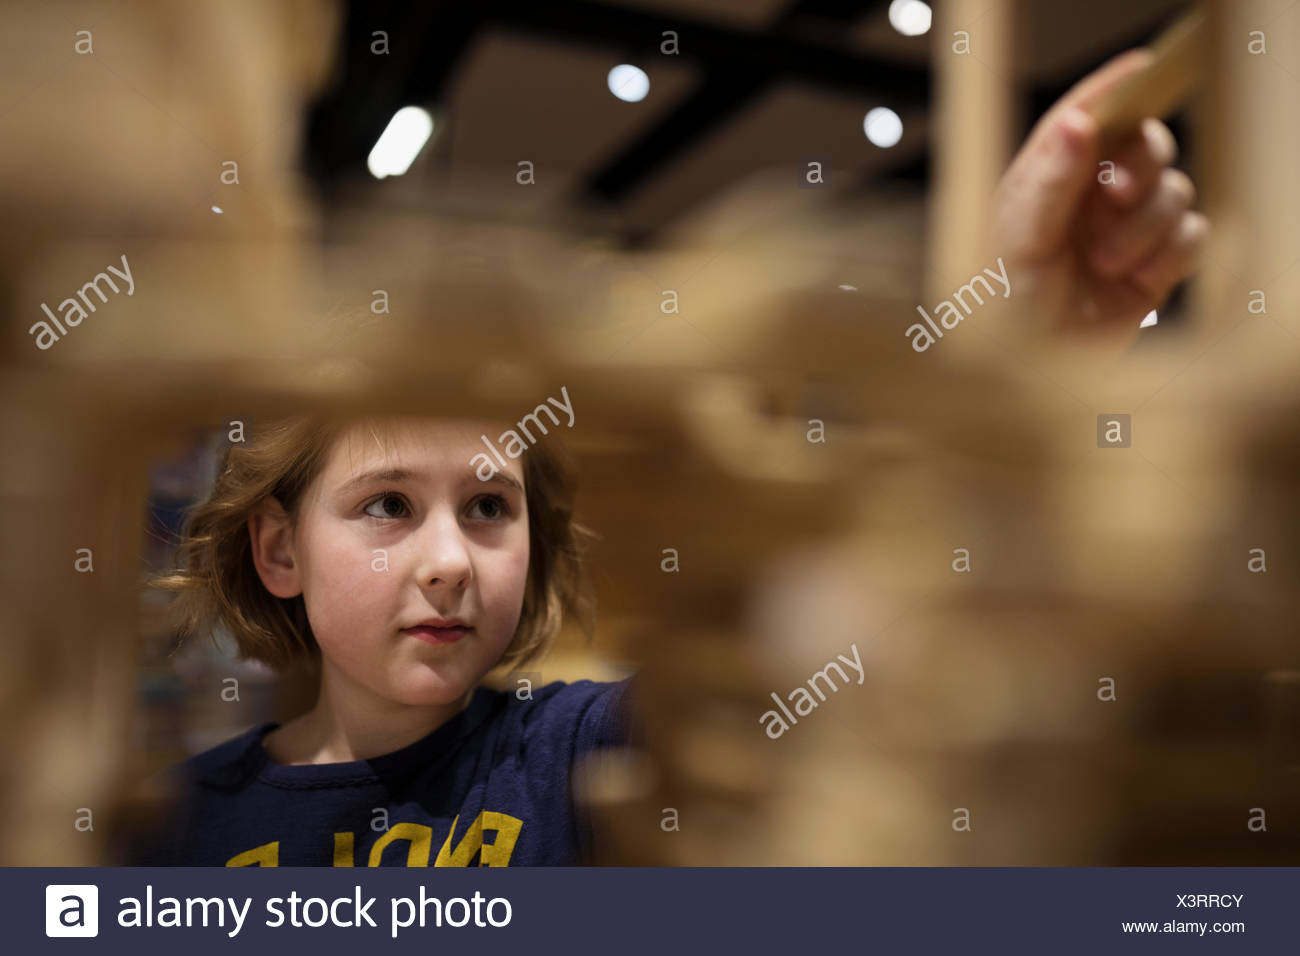 Curious girl reaching peg in science center - Stock Image